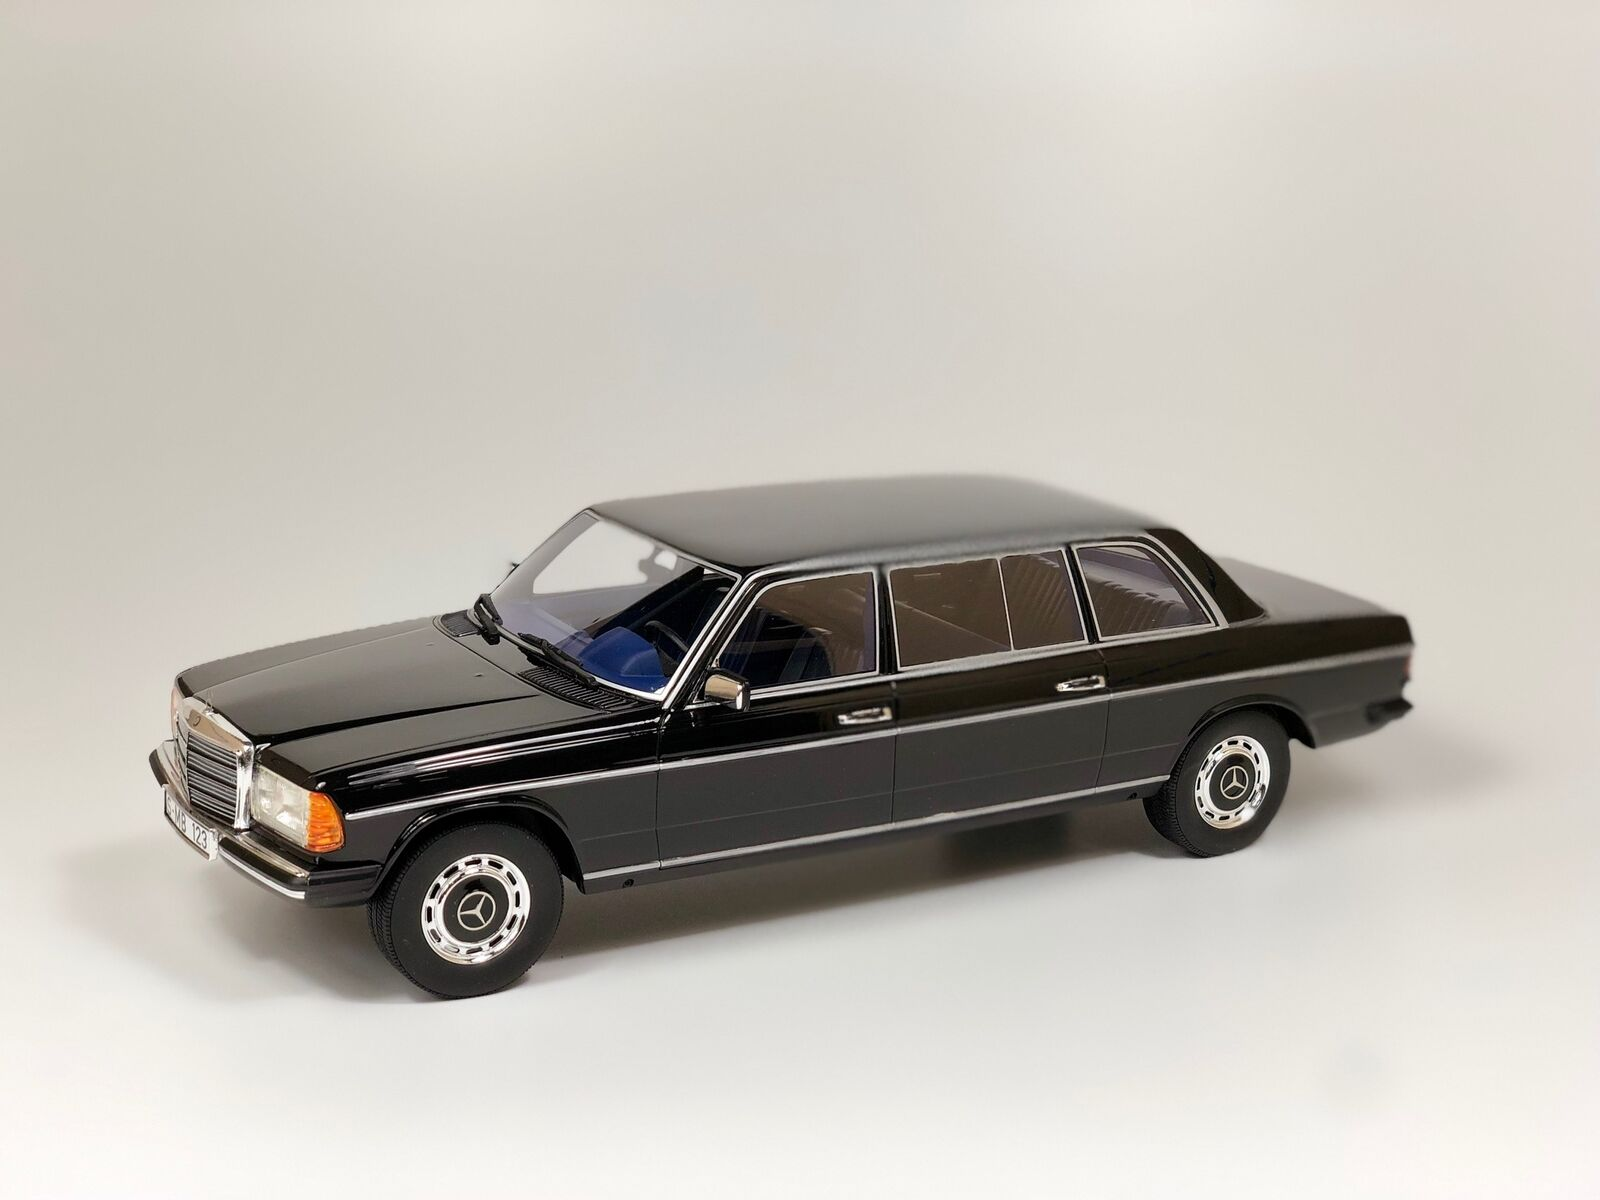 ORIGINAL MERCEDES BENZ CLASE E W123 Largo 2018 Negro